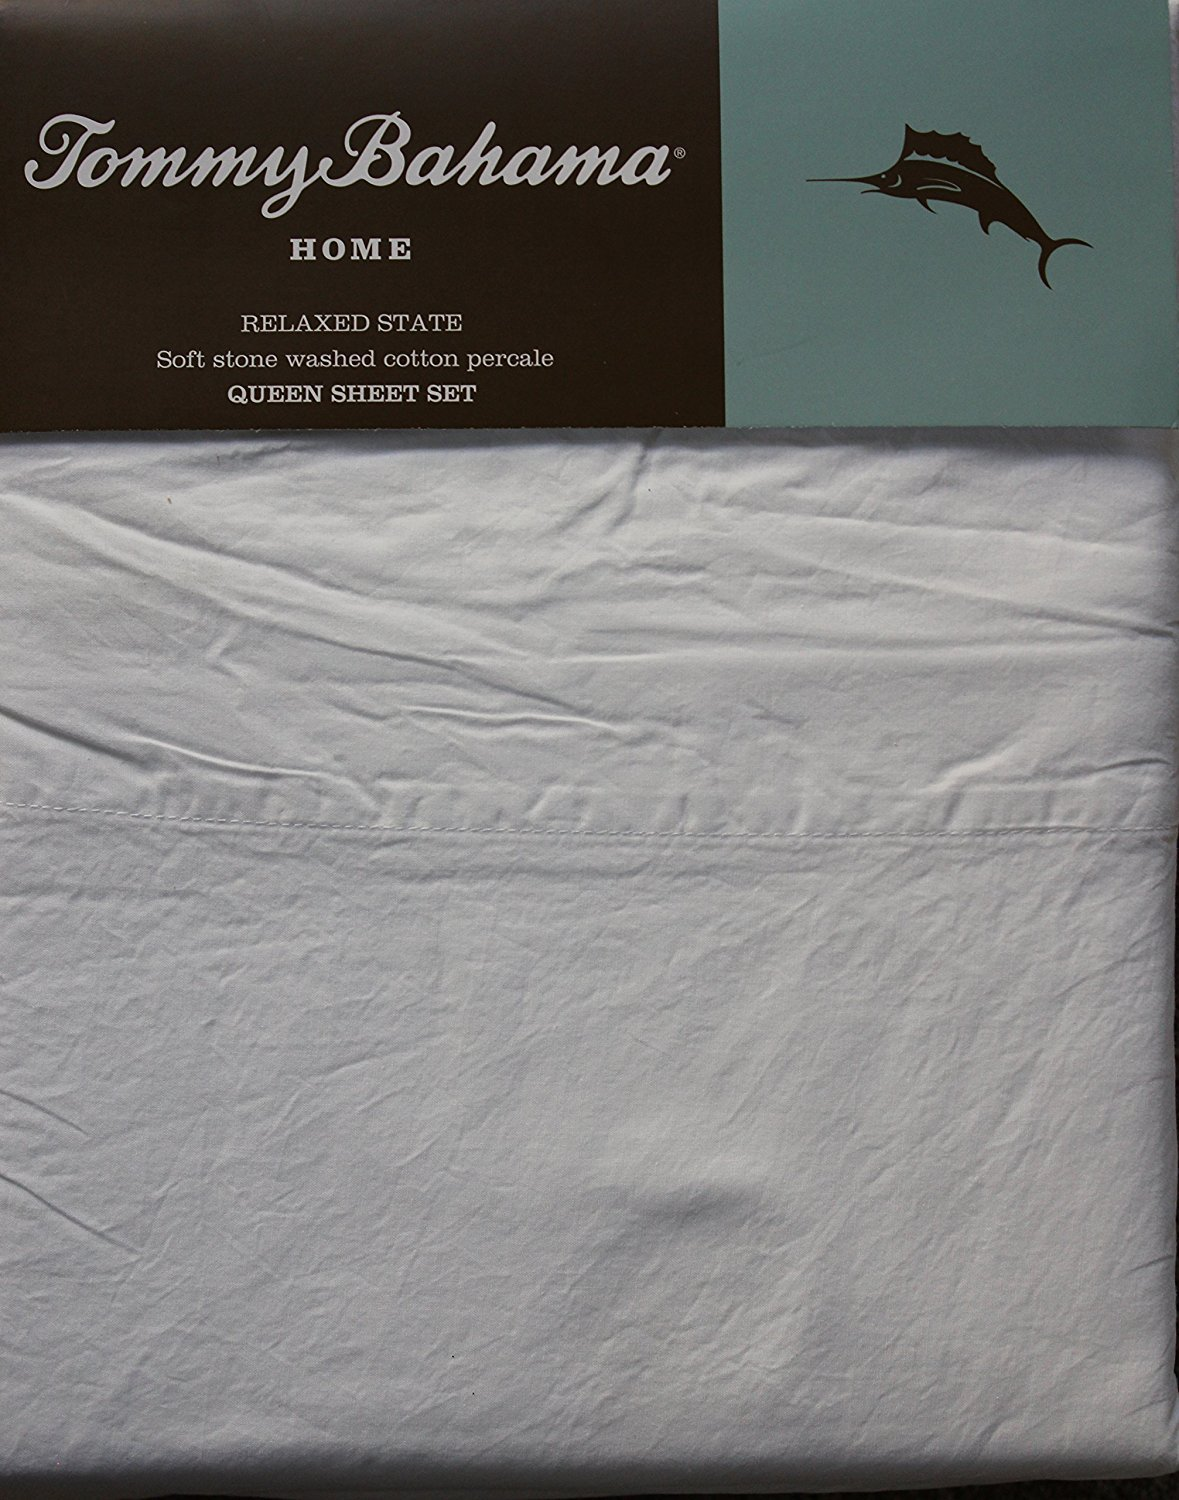 Tommy Bahama Relaxed State Stone Washed White Cotton Percale Sheet Set Queen